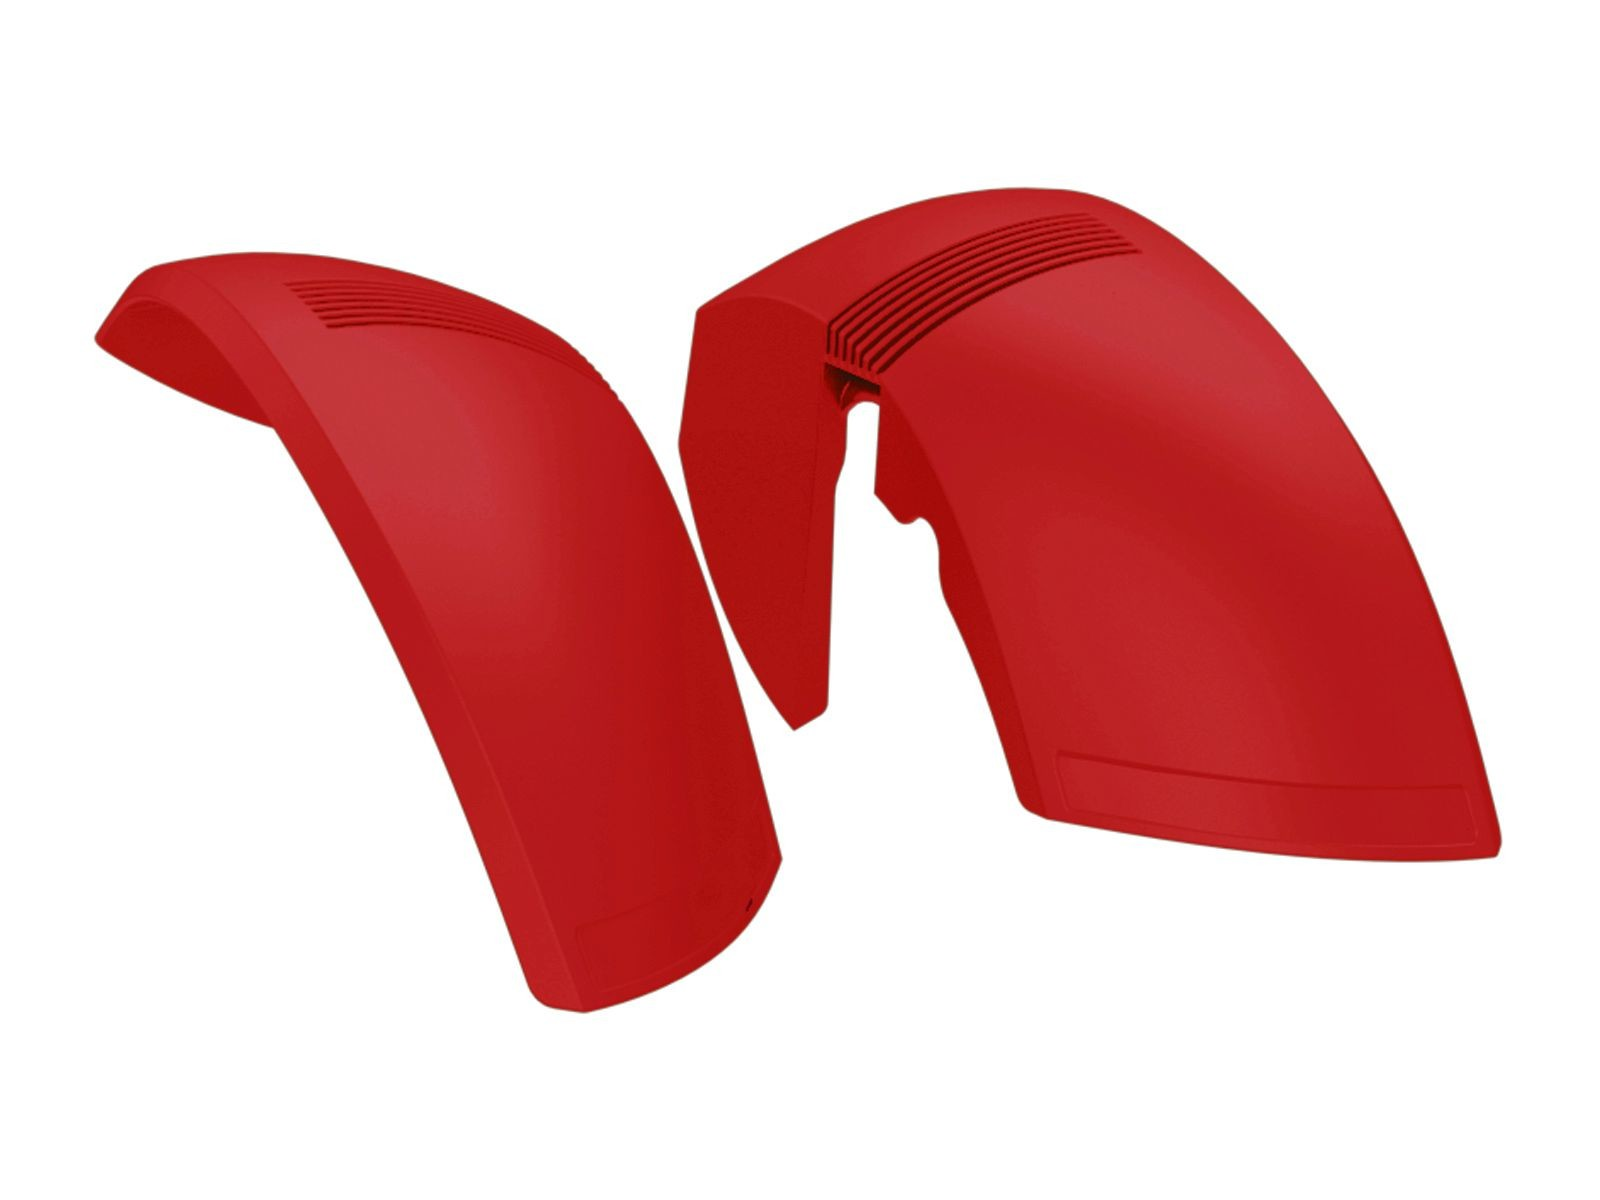 XL Frame - Rear mudguards 71° Case IH